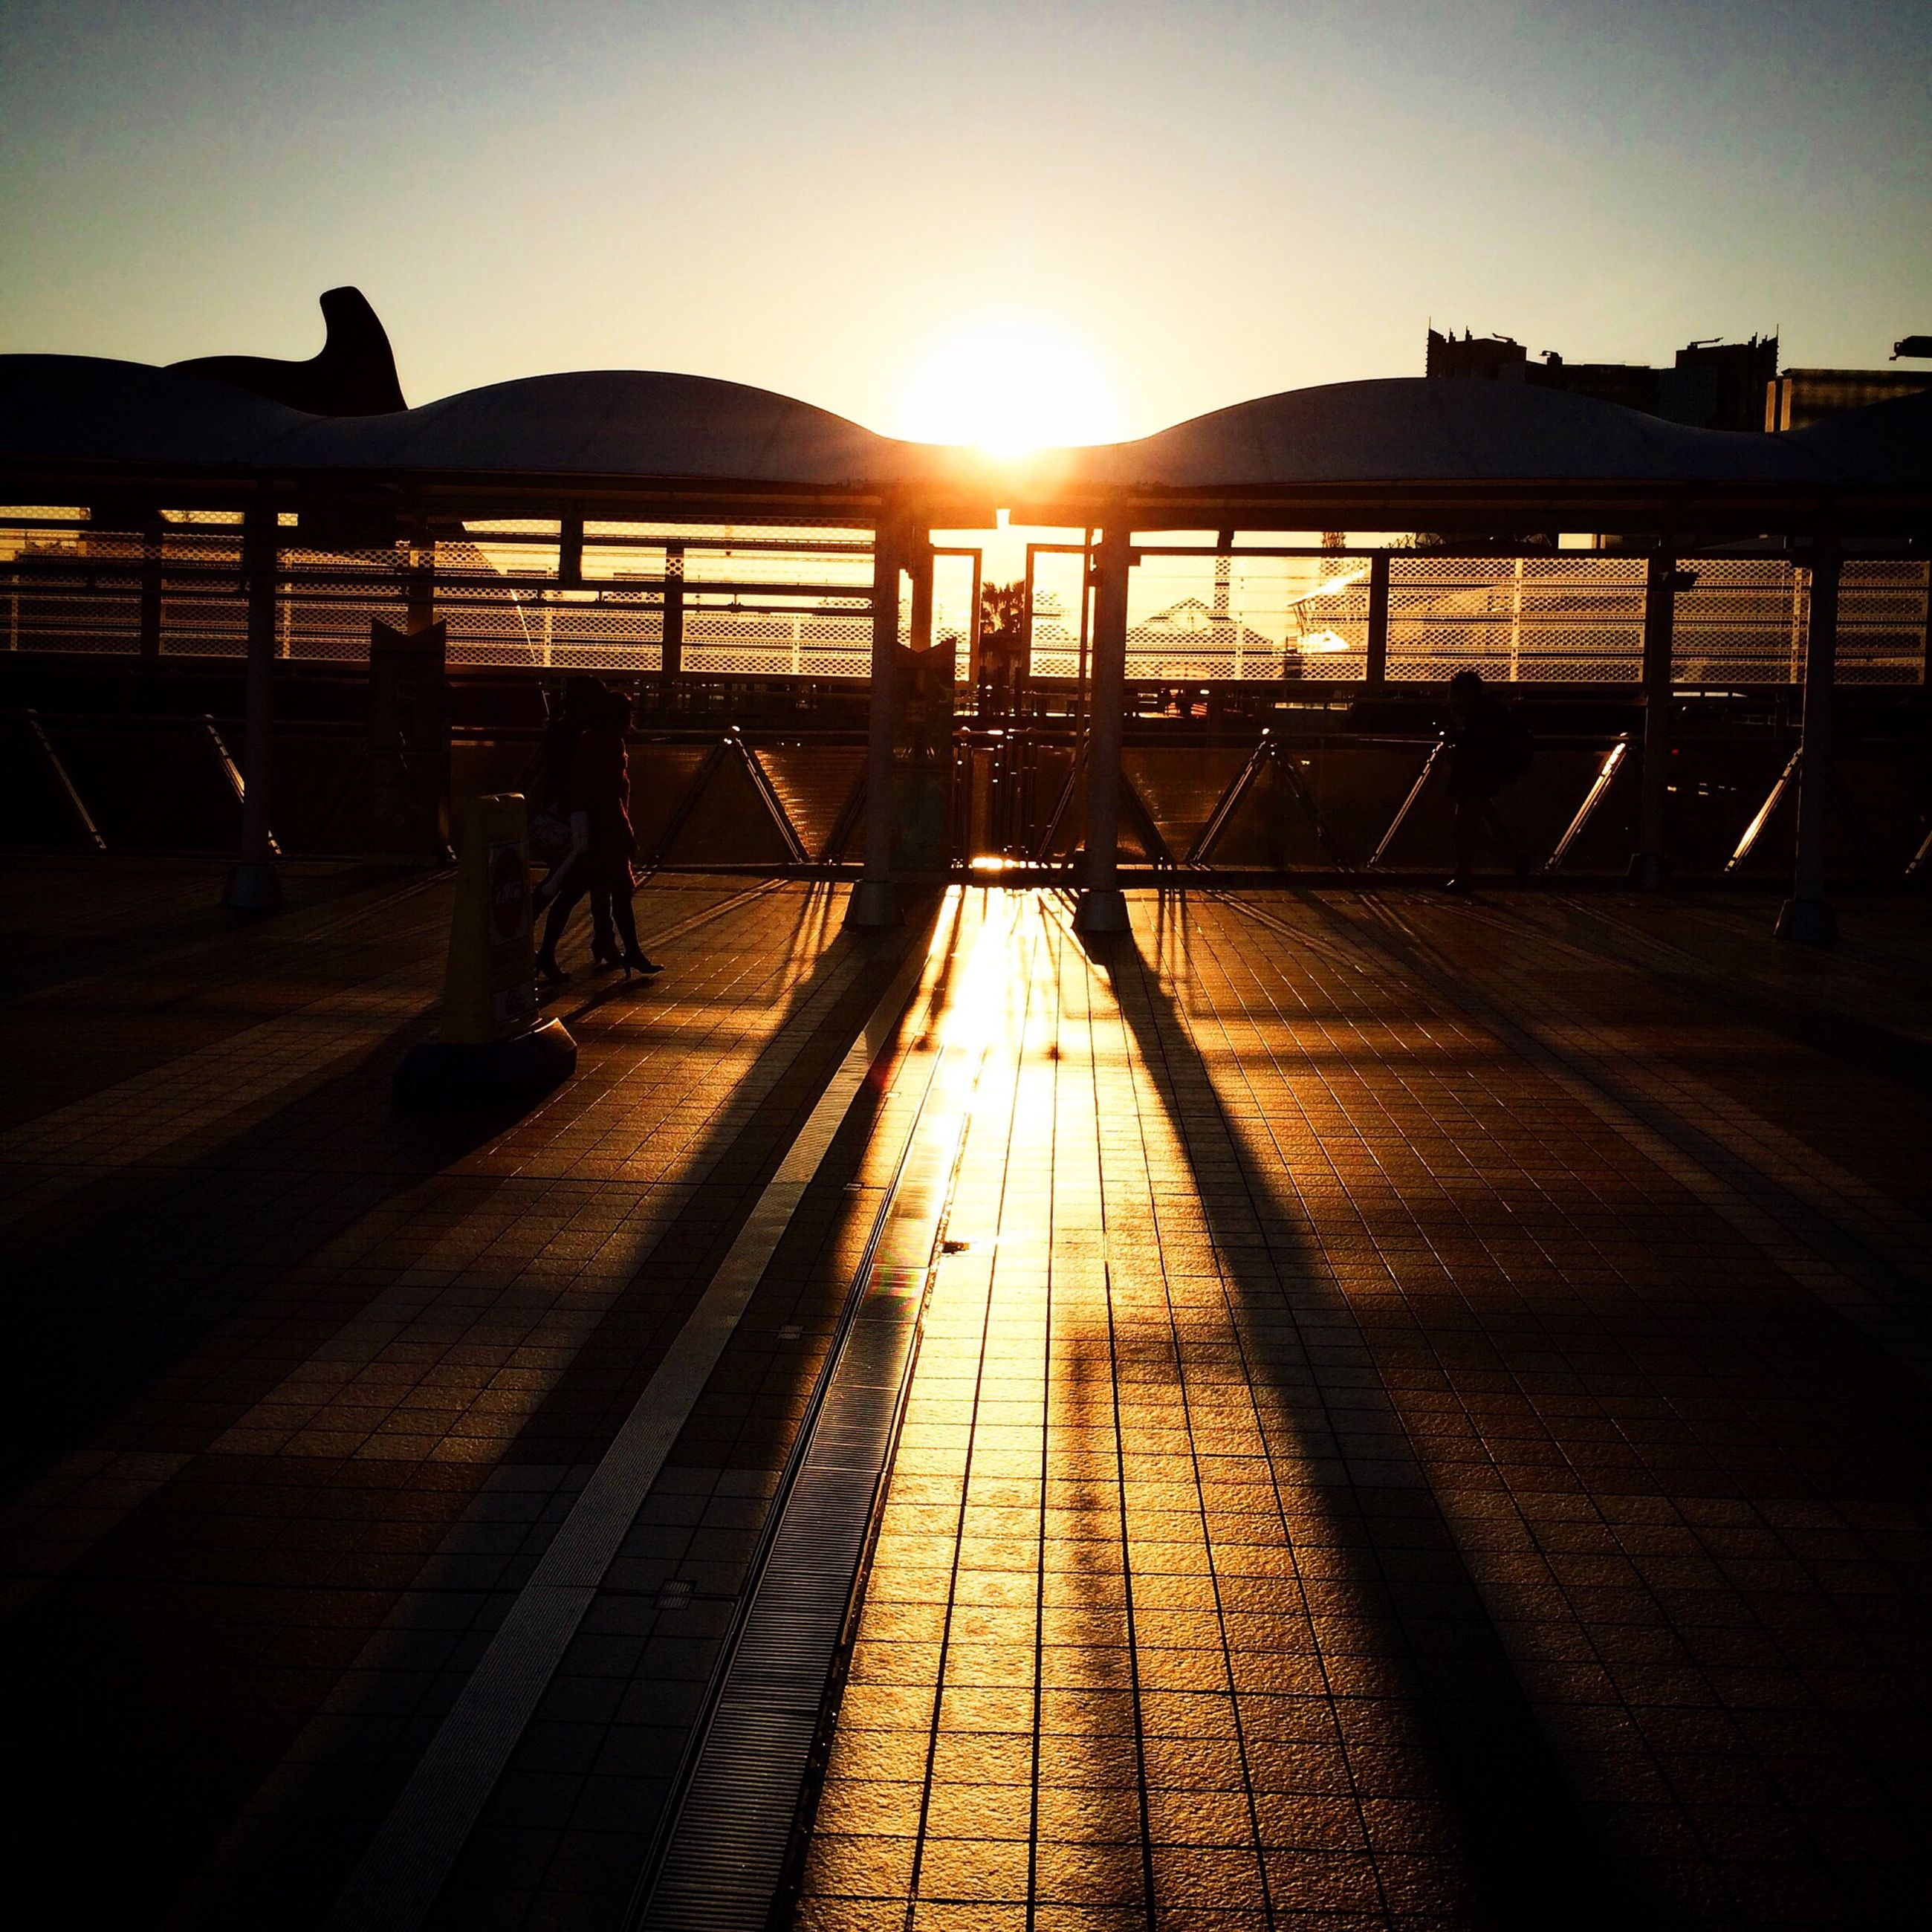 sunset, sun, sunlight, built structure, silhouette, architecture, railing, transportation, water, sky, clear sky, bridge - man made structure, connection, the way forward, incidental people, outdoors, reflection, sunbeam, shadow